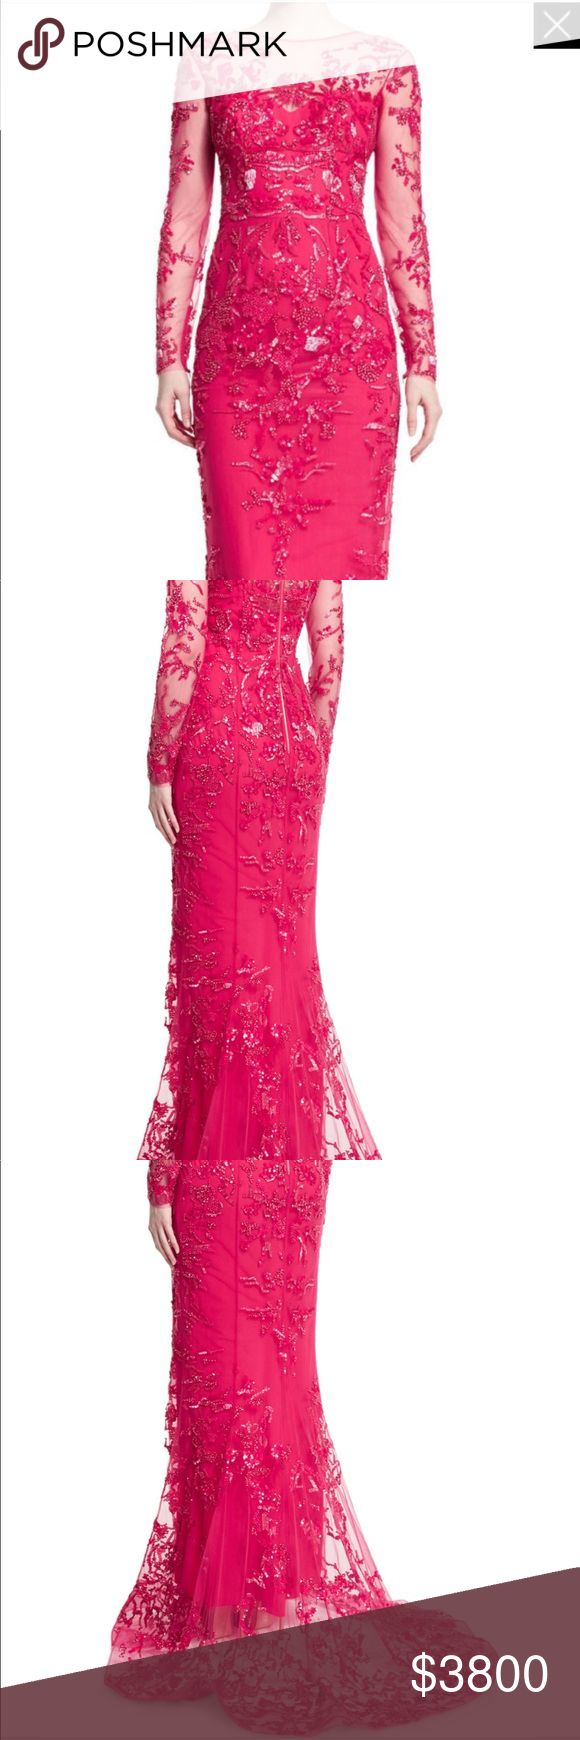 Zuhair Murad floral beaded tulle gown Floral beaded Rose color evening gown with Tulle underlay. Long sleeves with a Mini train that has concealed buttons and ribbons in the back for bustling if needed. Worn once like new. Original price is $13215.00 Zuhair Murad Dresses Maxi